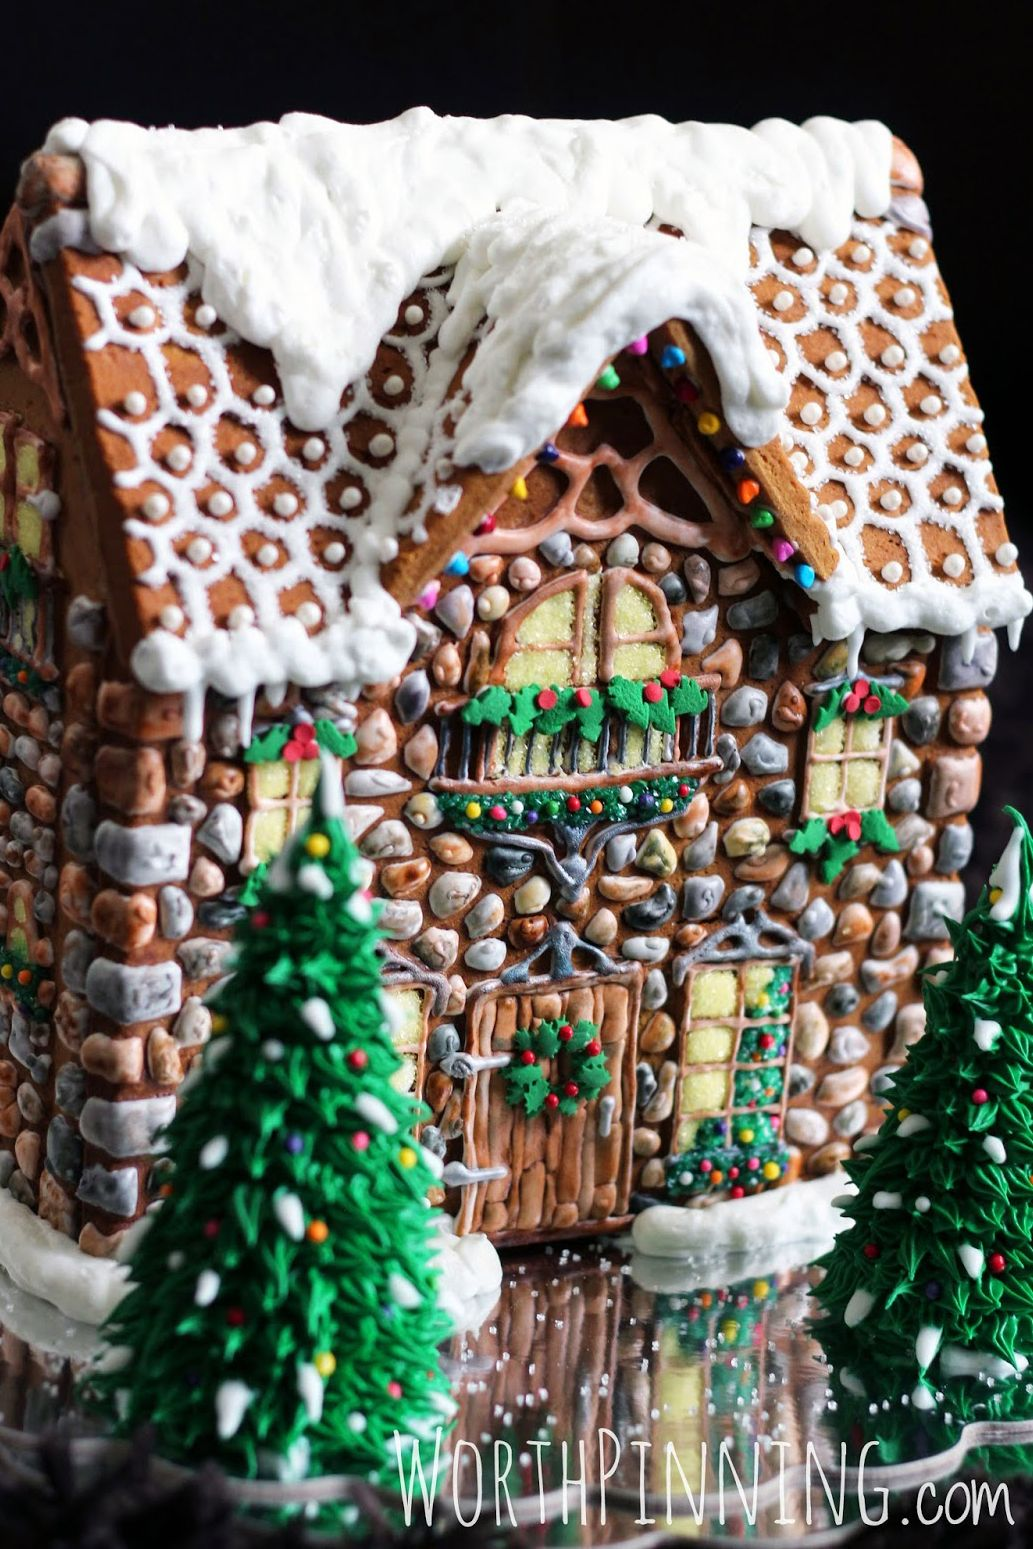 40 amazing gingerbread houses pictures of gingerbread house design ideas - Gingerbread House Christmas Decorations